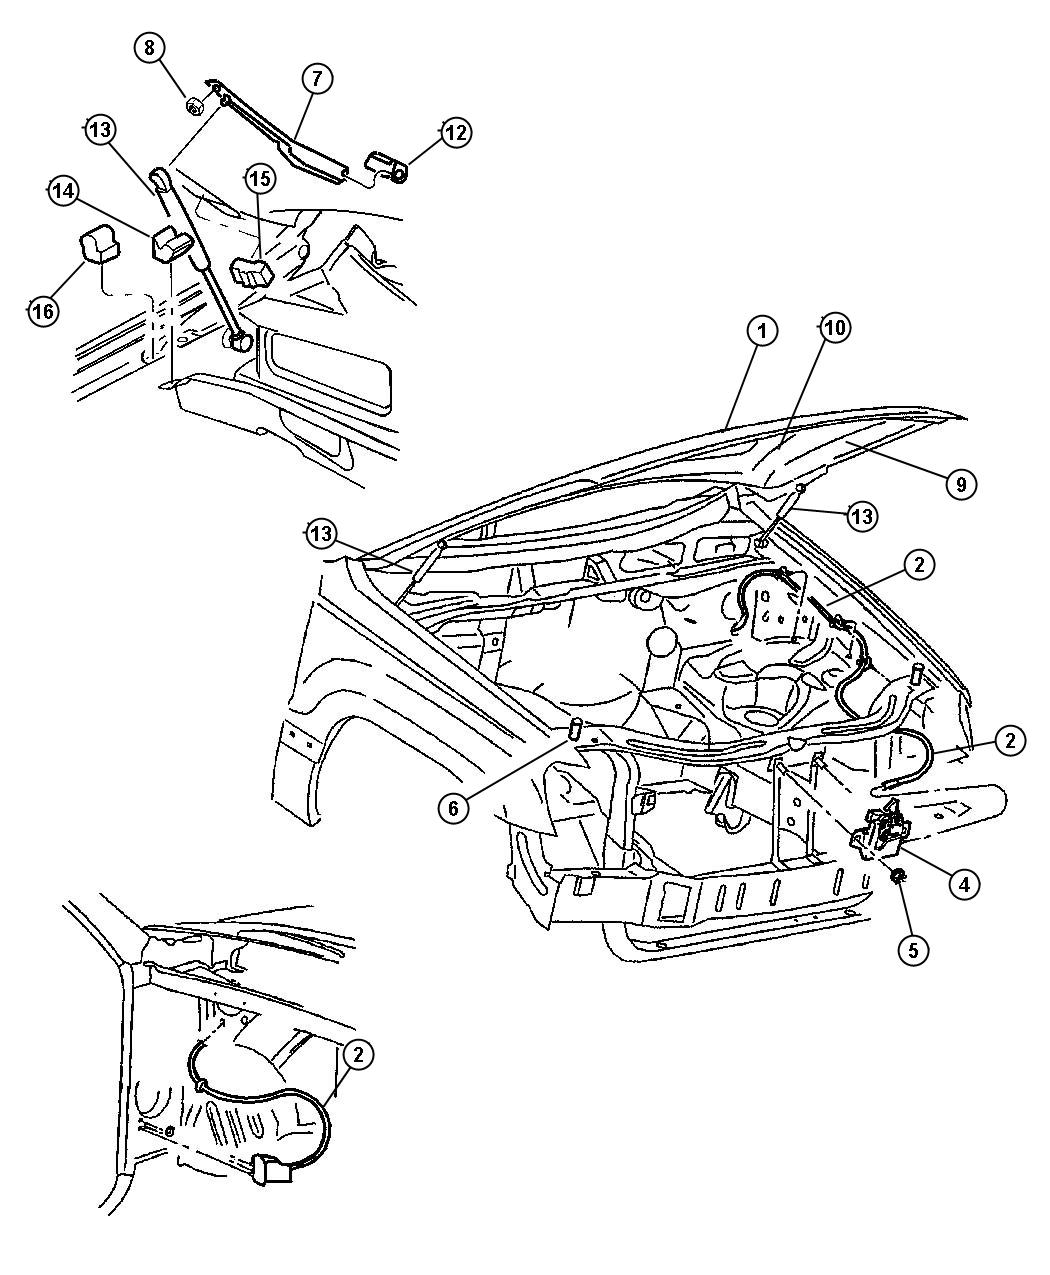 1980 Chevy Truck Wiring Diagram Sel Engine 1980 Chevy